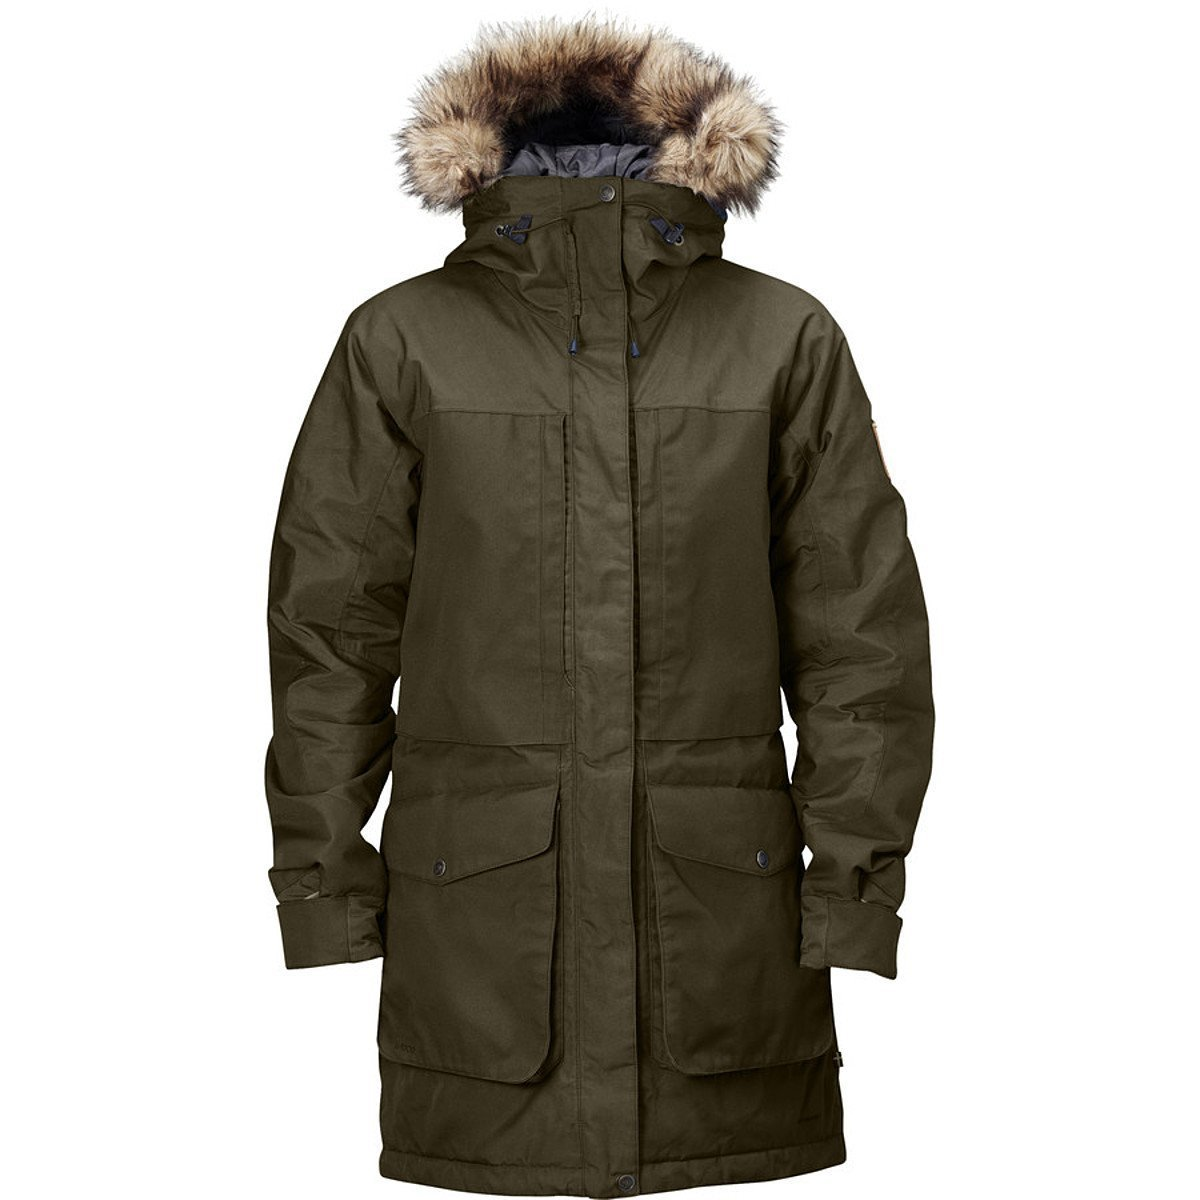 Fjallraven Men's Barents Parka Dark Olive Large [並行輸入品] B0784GZ9KP